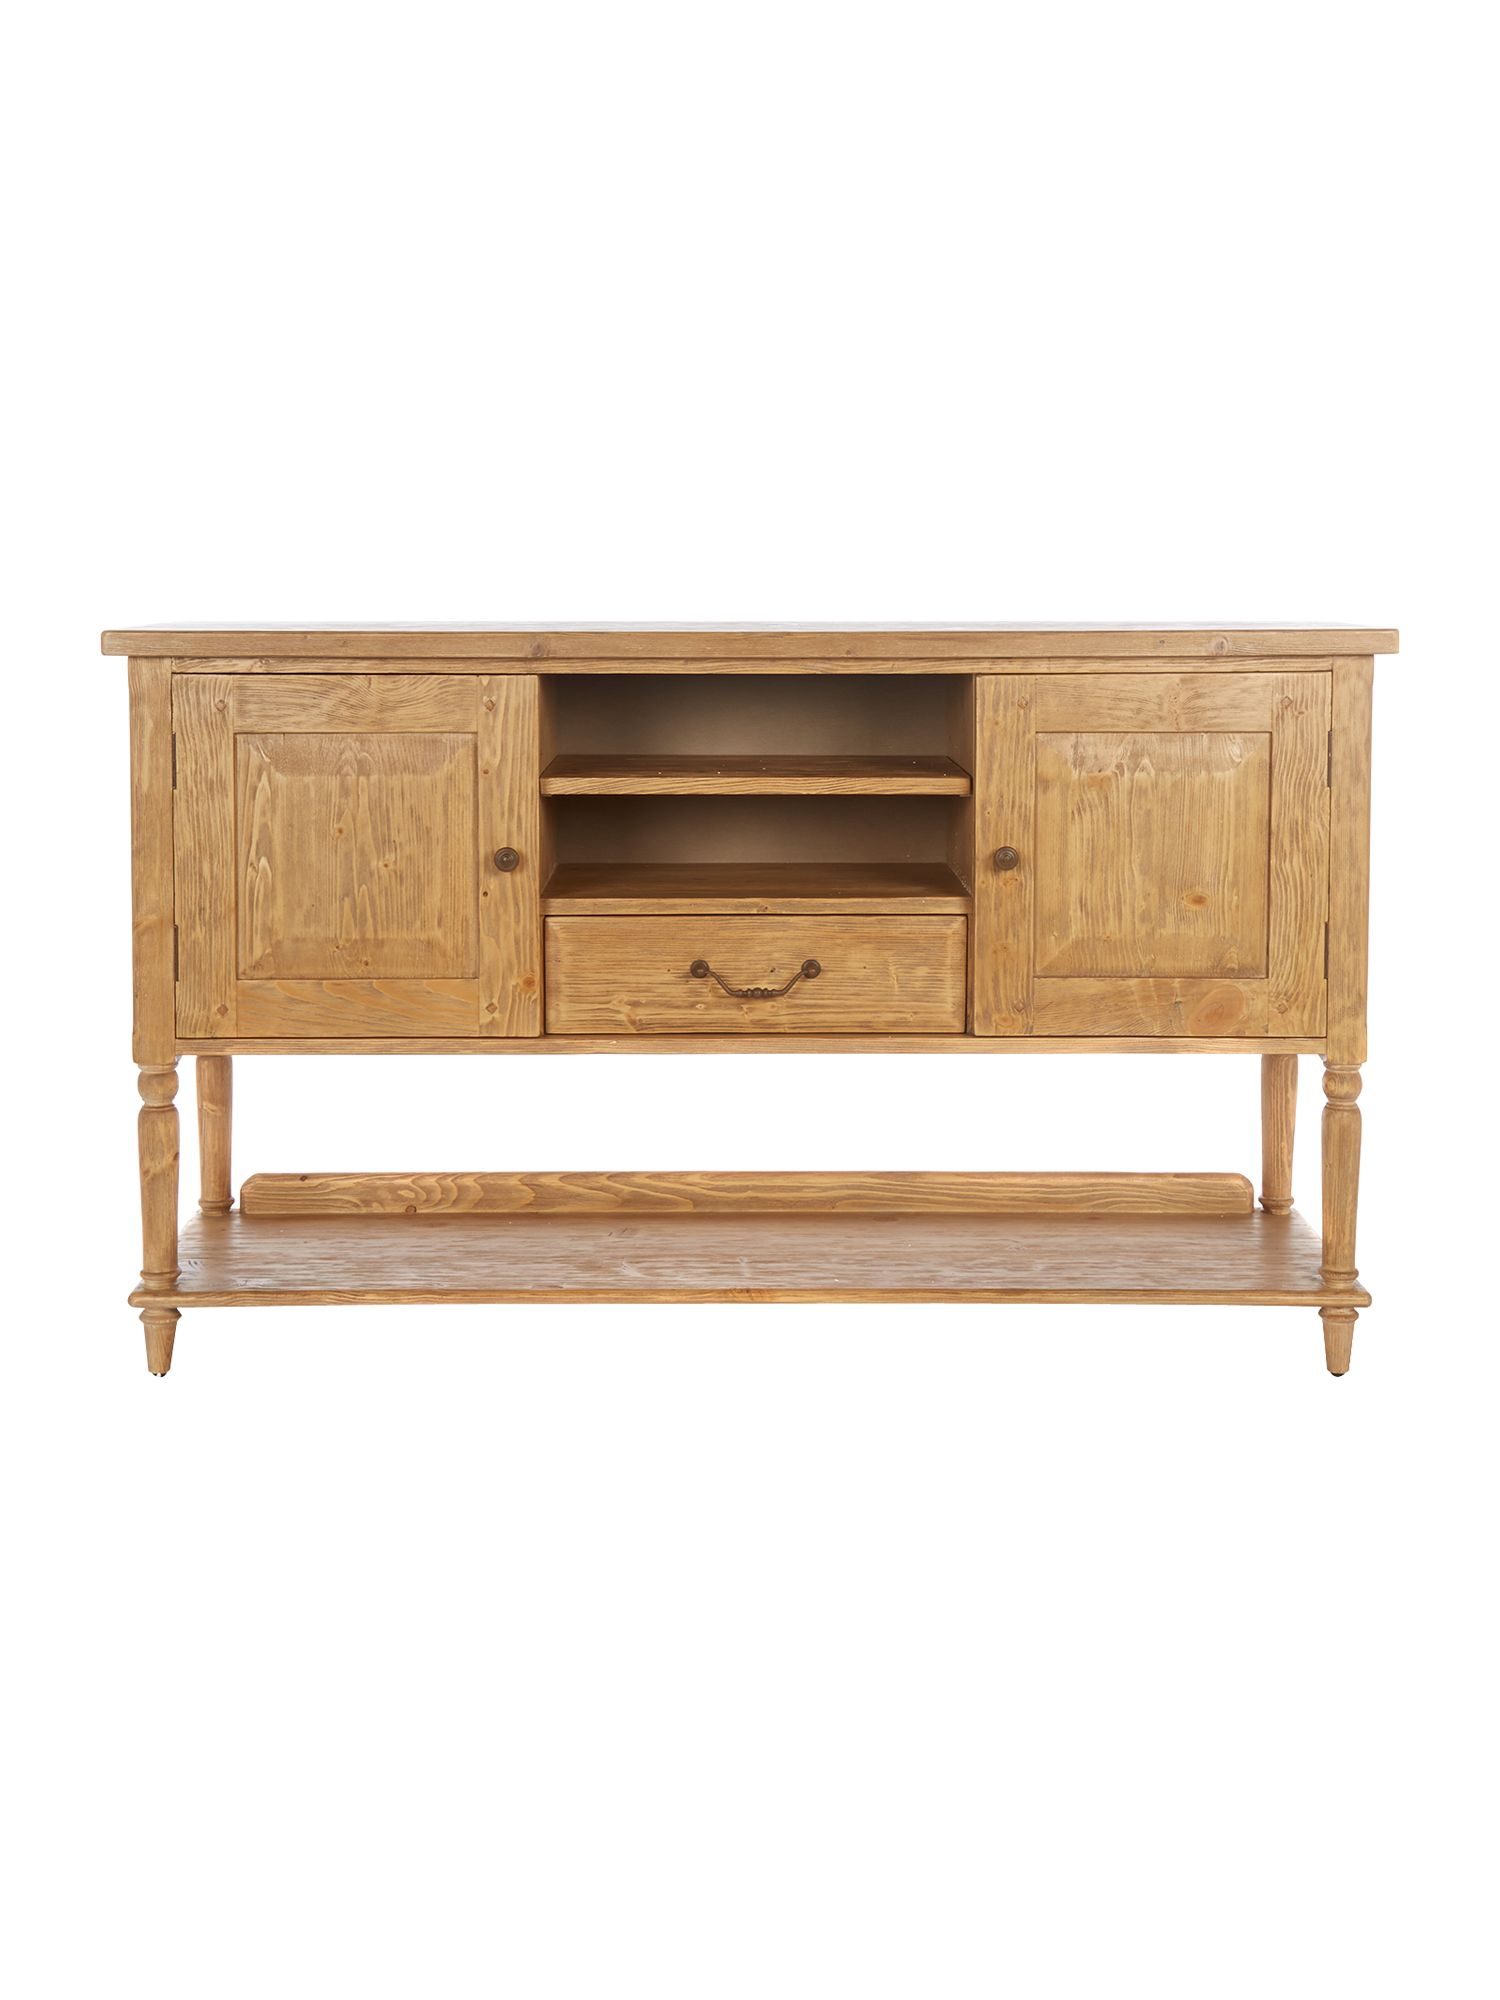 Buy cheap shabby chic sideboard compare furniture prices for Affordable furniture cambridge